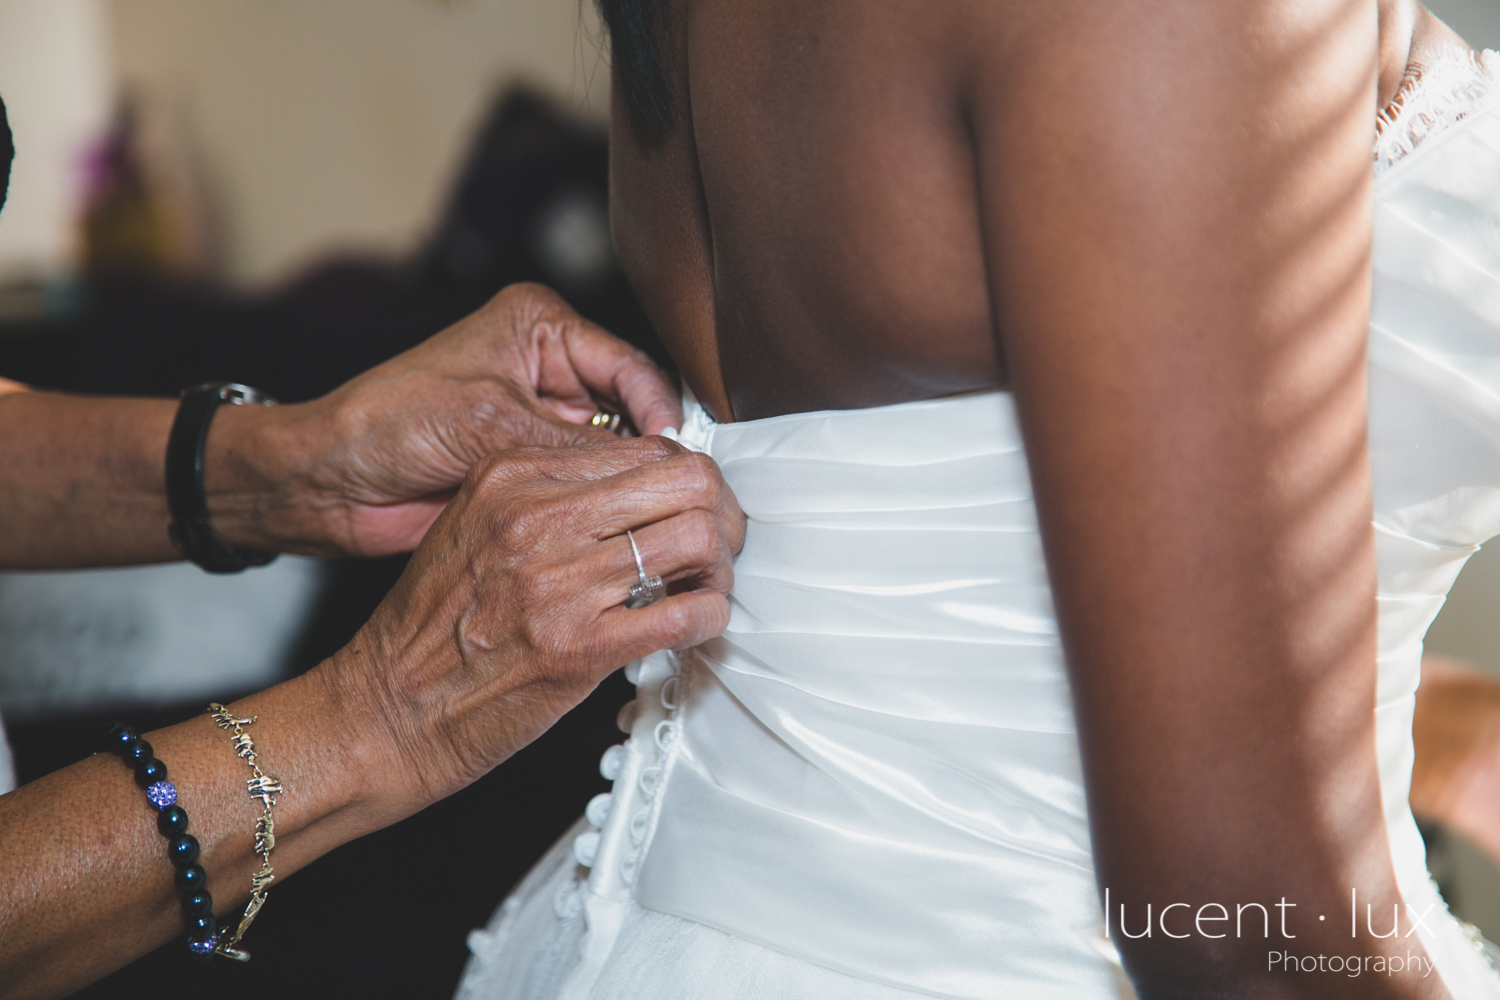 Harford_County_Courthouse_Bel_Air_Maryland_Wedding_Photographer_Maryland_Wedding_Photography-108.jpg